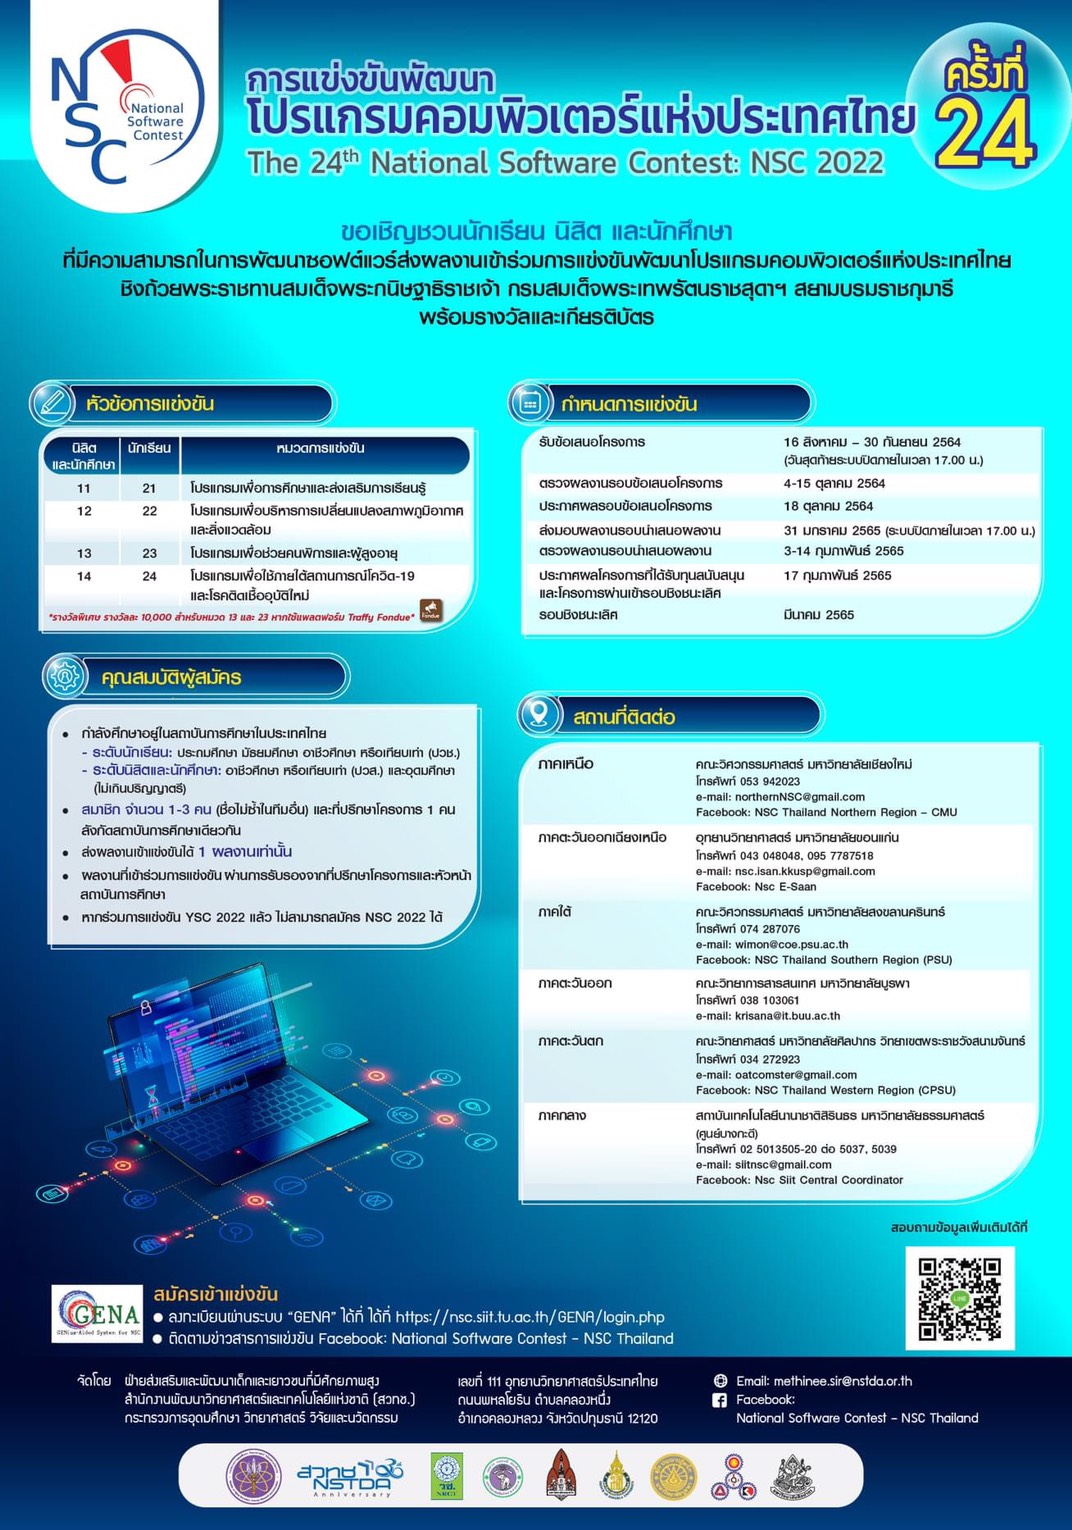 National Software Contest 2022